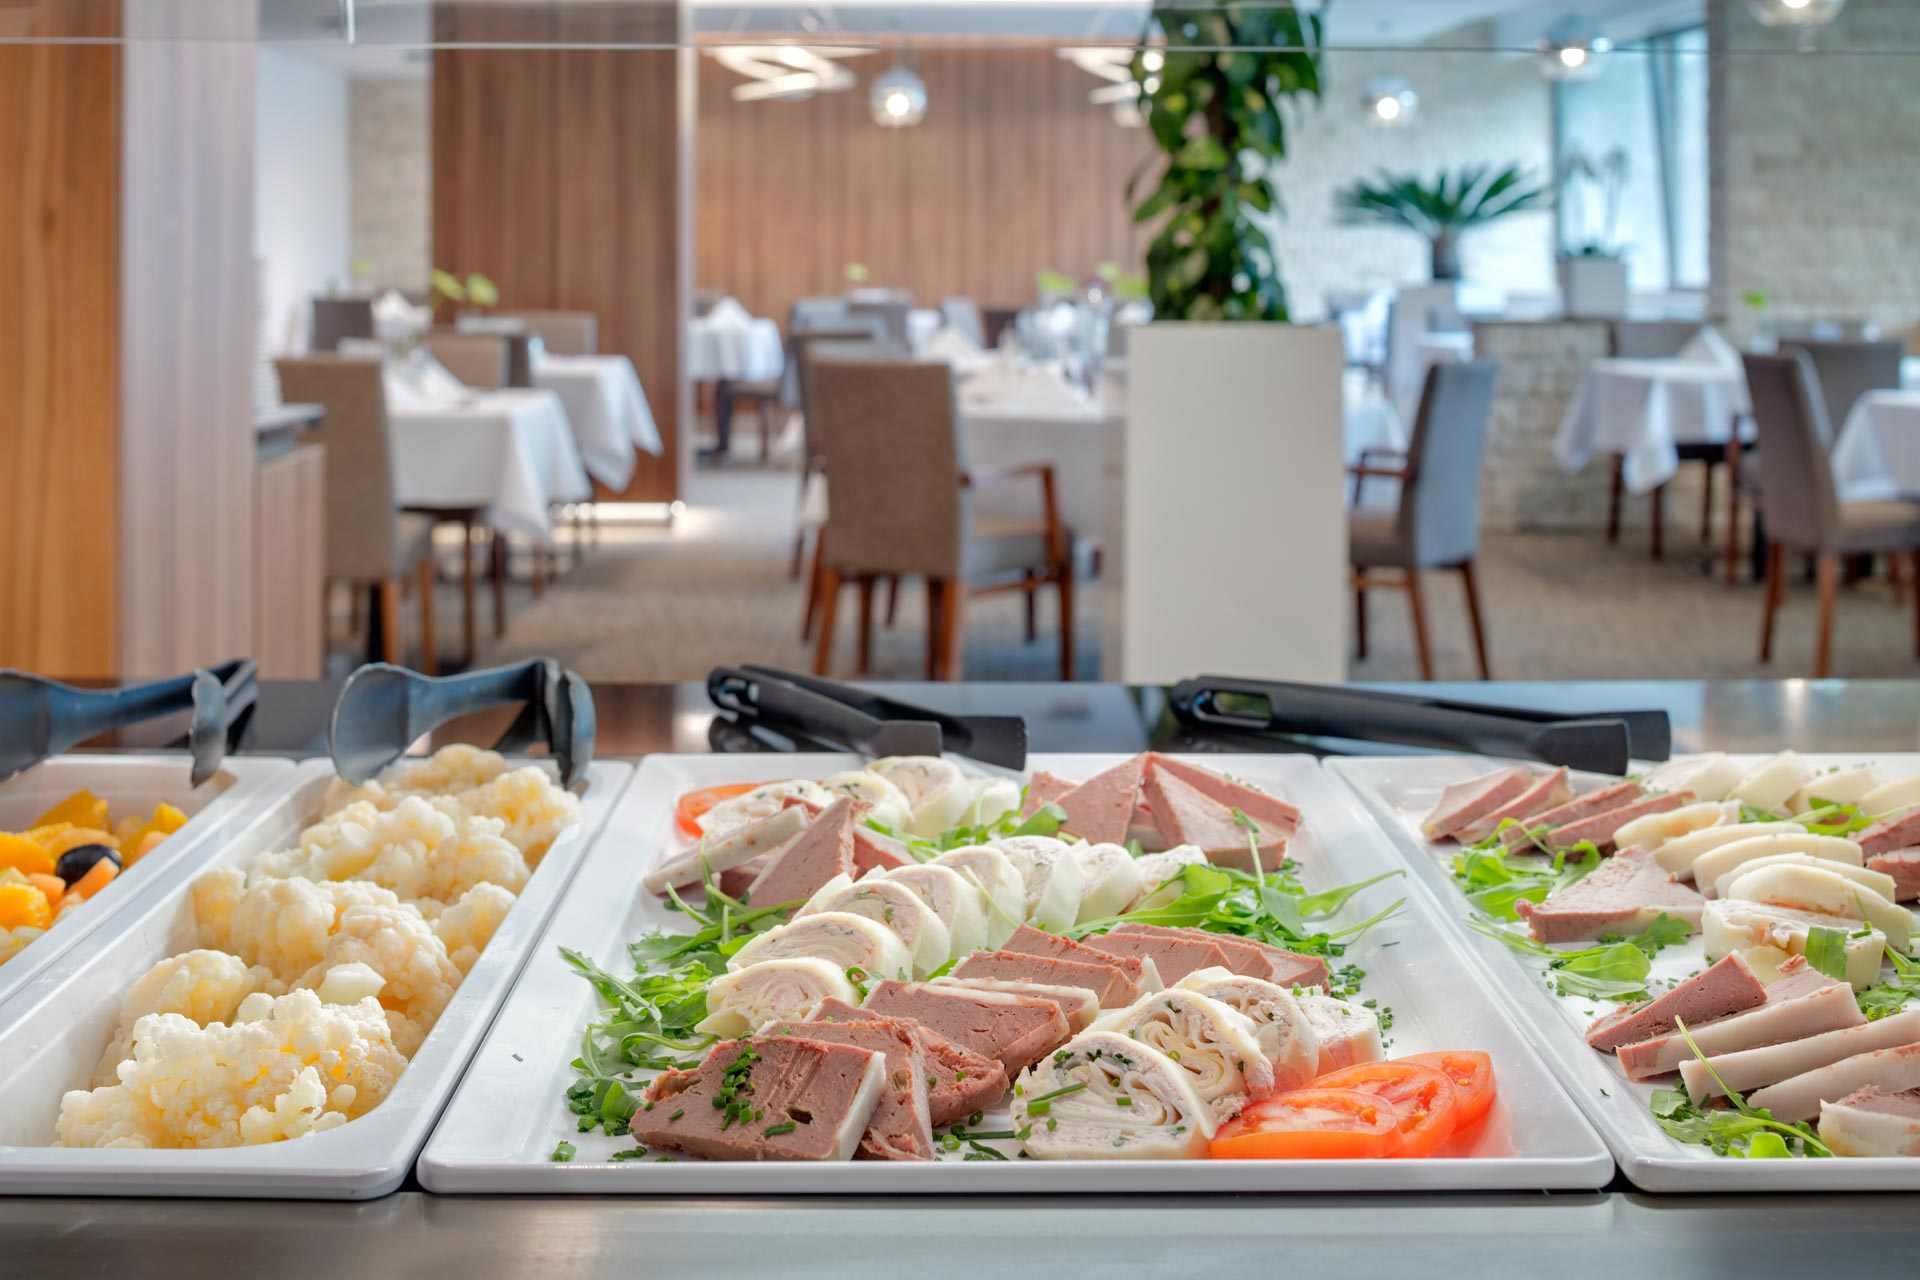 Restaurant buffet at Hotel Esplanade Spa Piestany